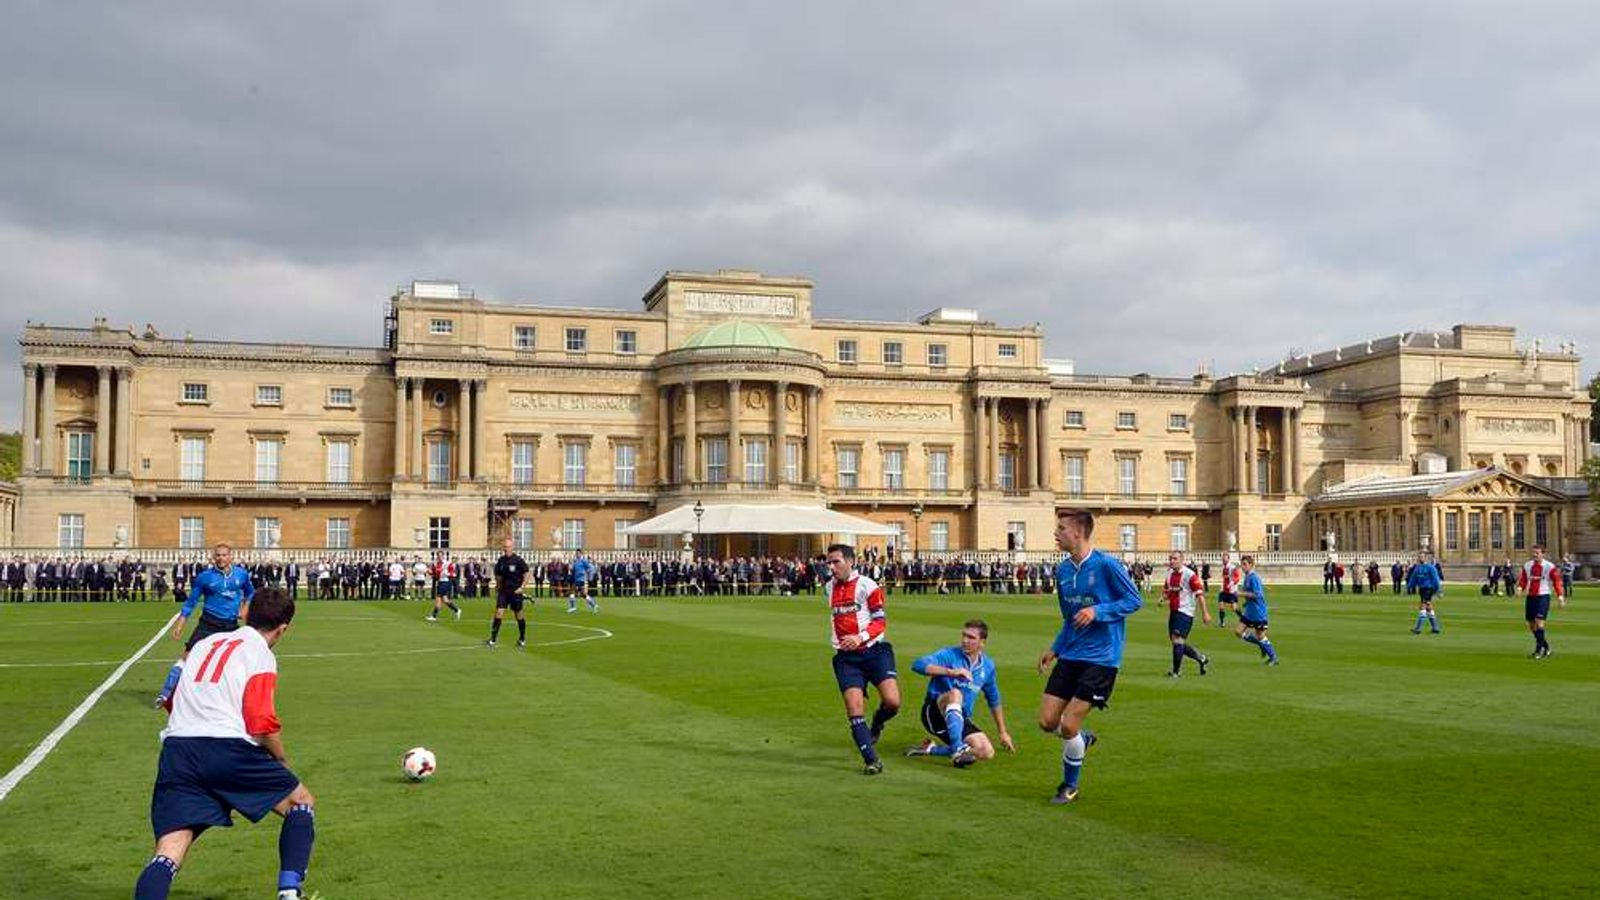 Polytechnic FC play Civil Service FC in a Southern Amateur League football match in the grounds of Buckingham Palace, in central London